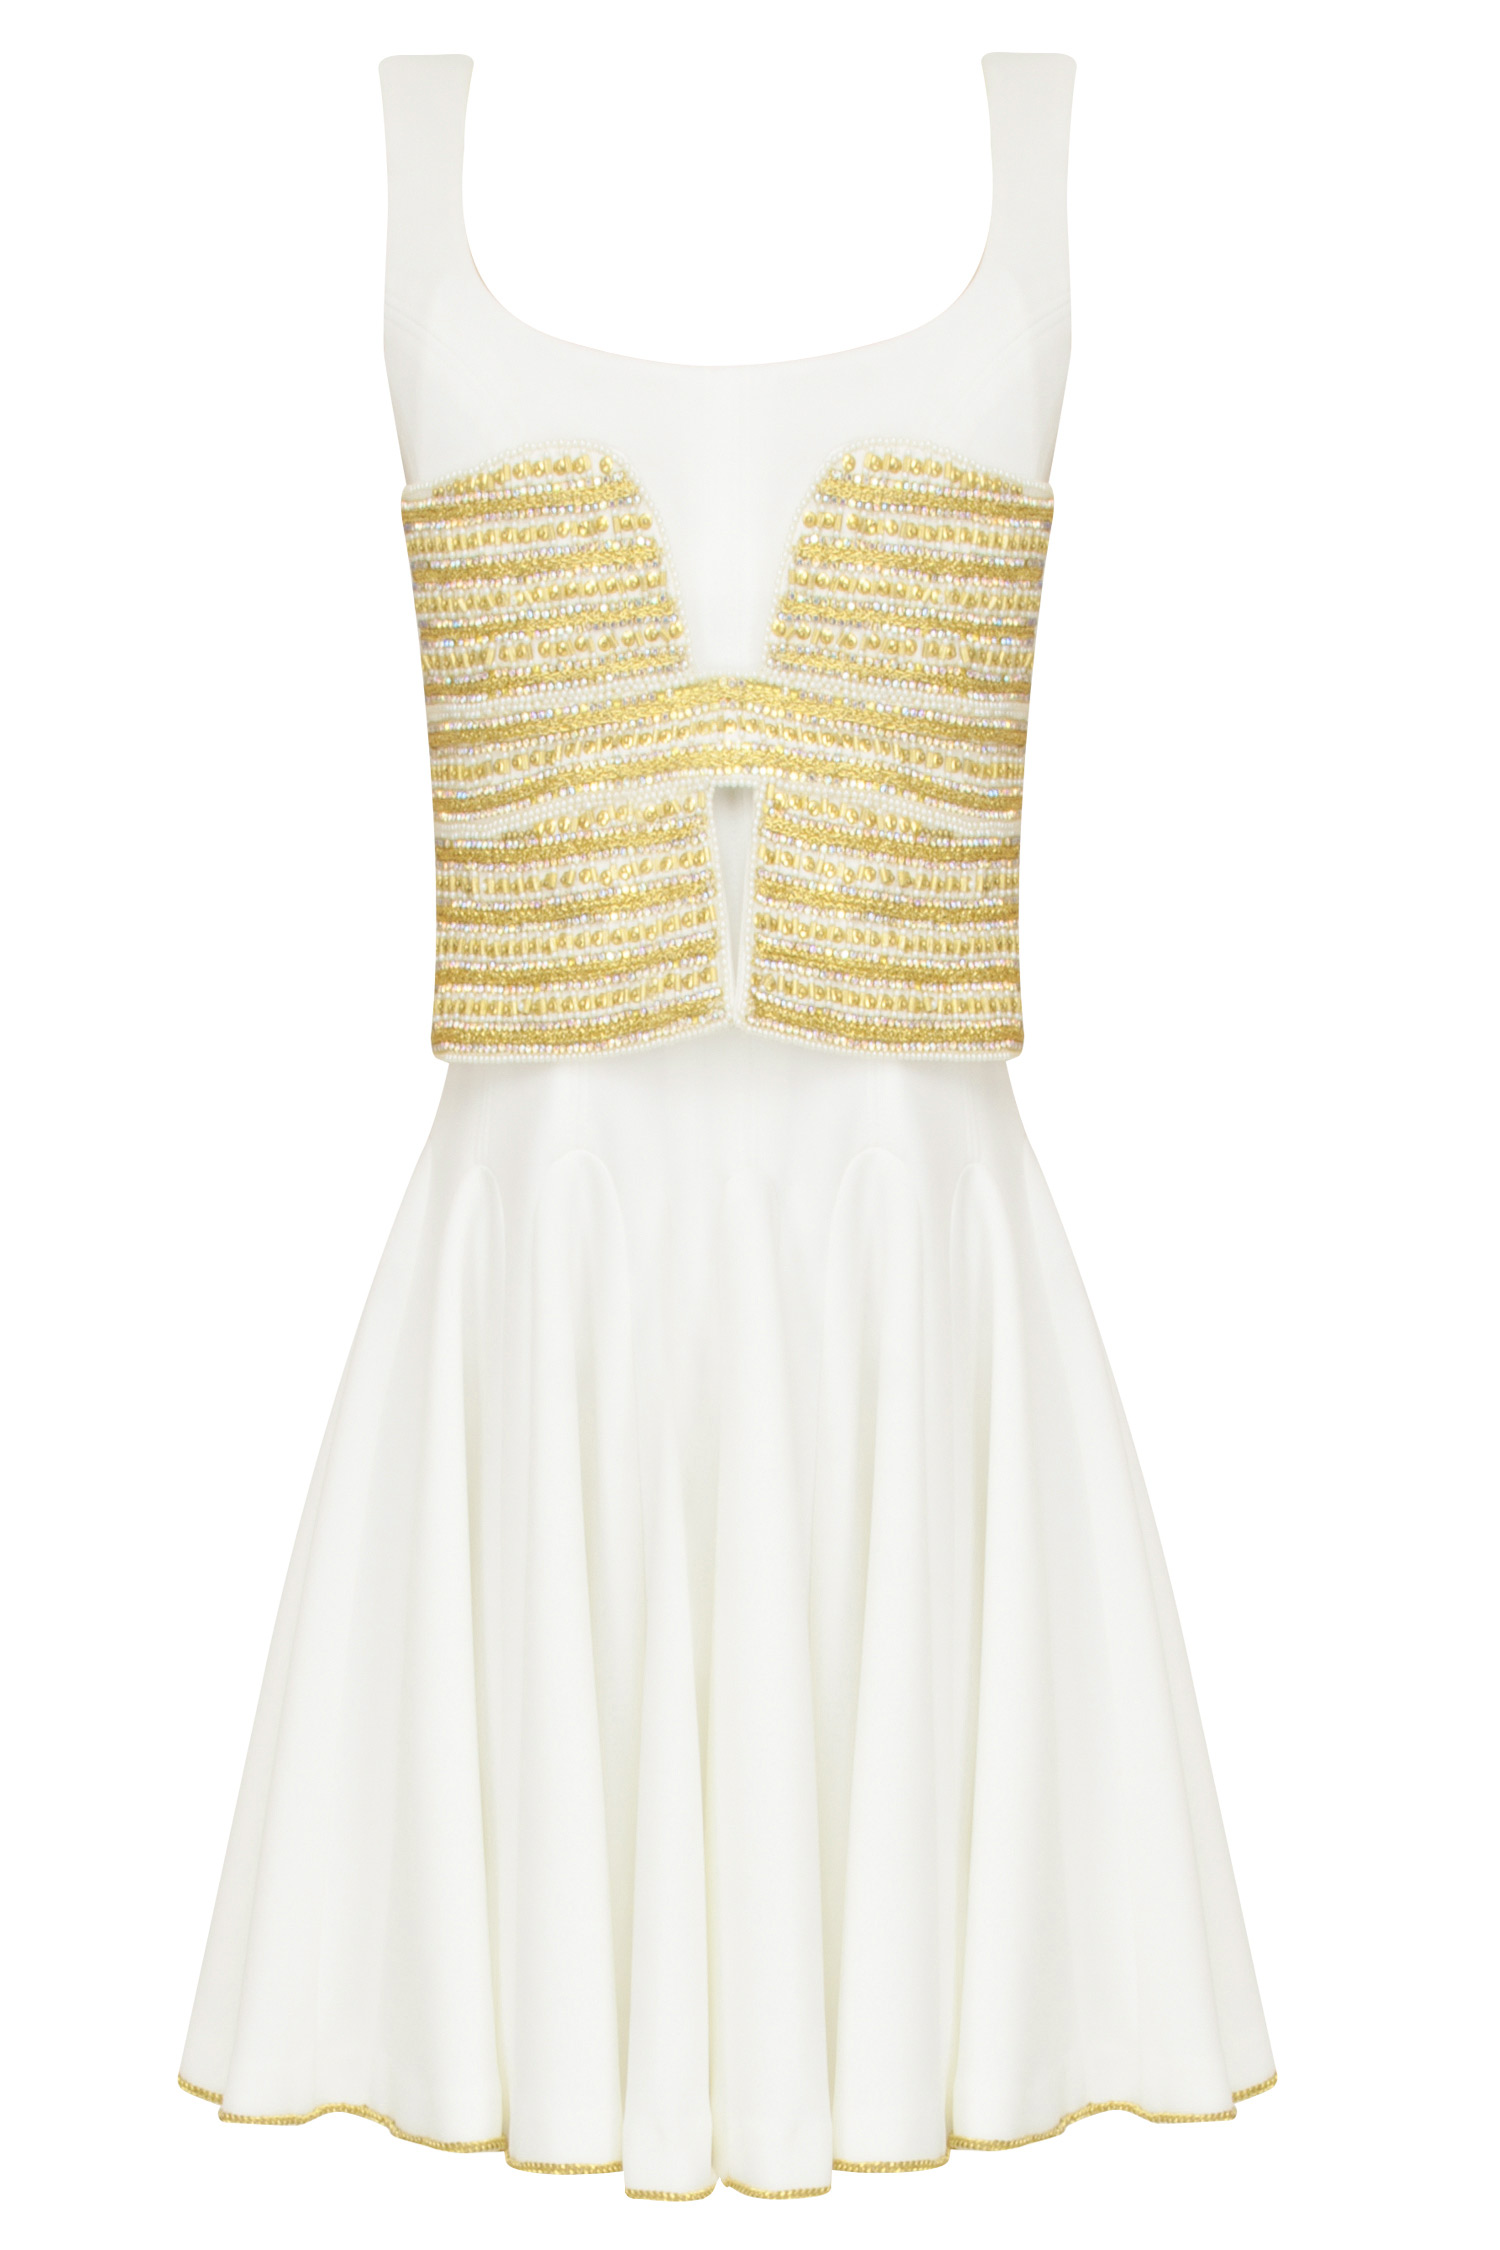 room couture presents boxpleat dress with embellished